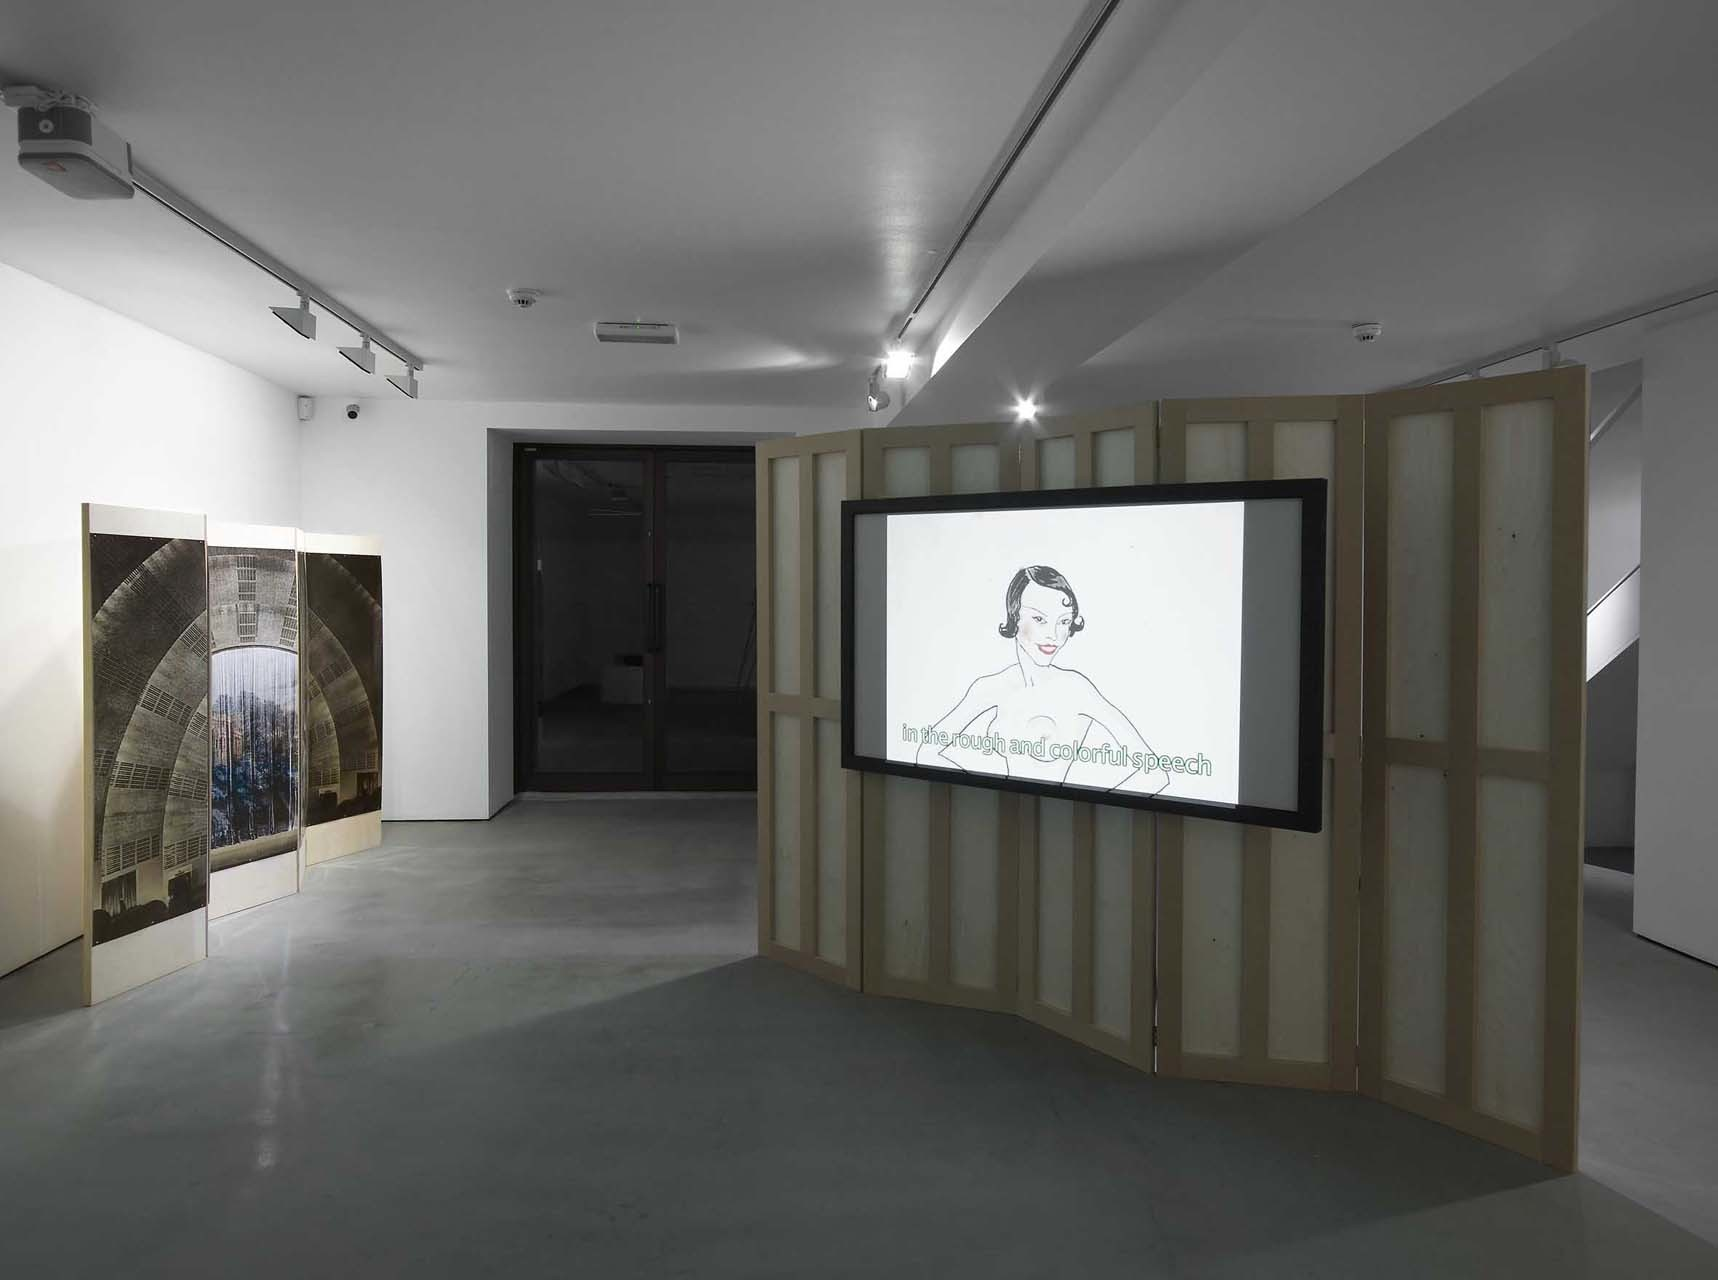 """<div class=""""artwork_caption""""><p>The Heir and Astaire, Installation View, 2010</p></div>"""